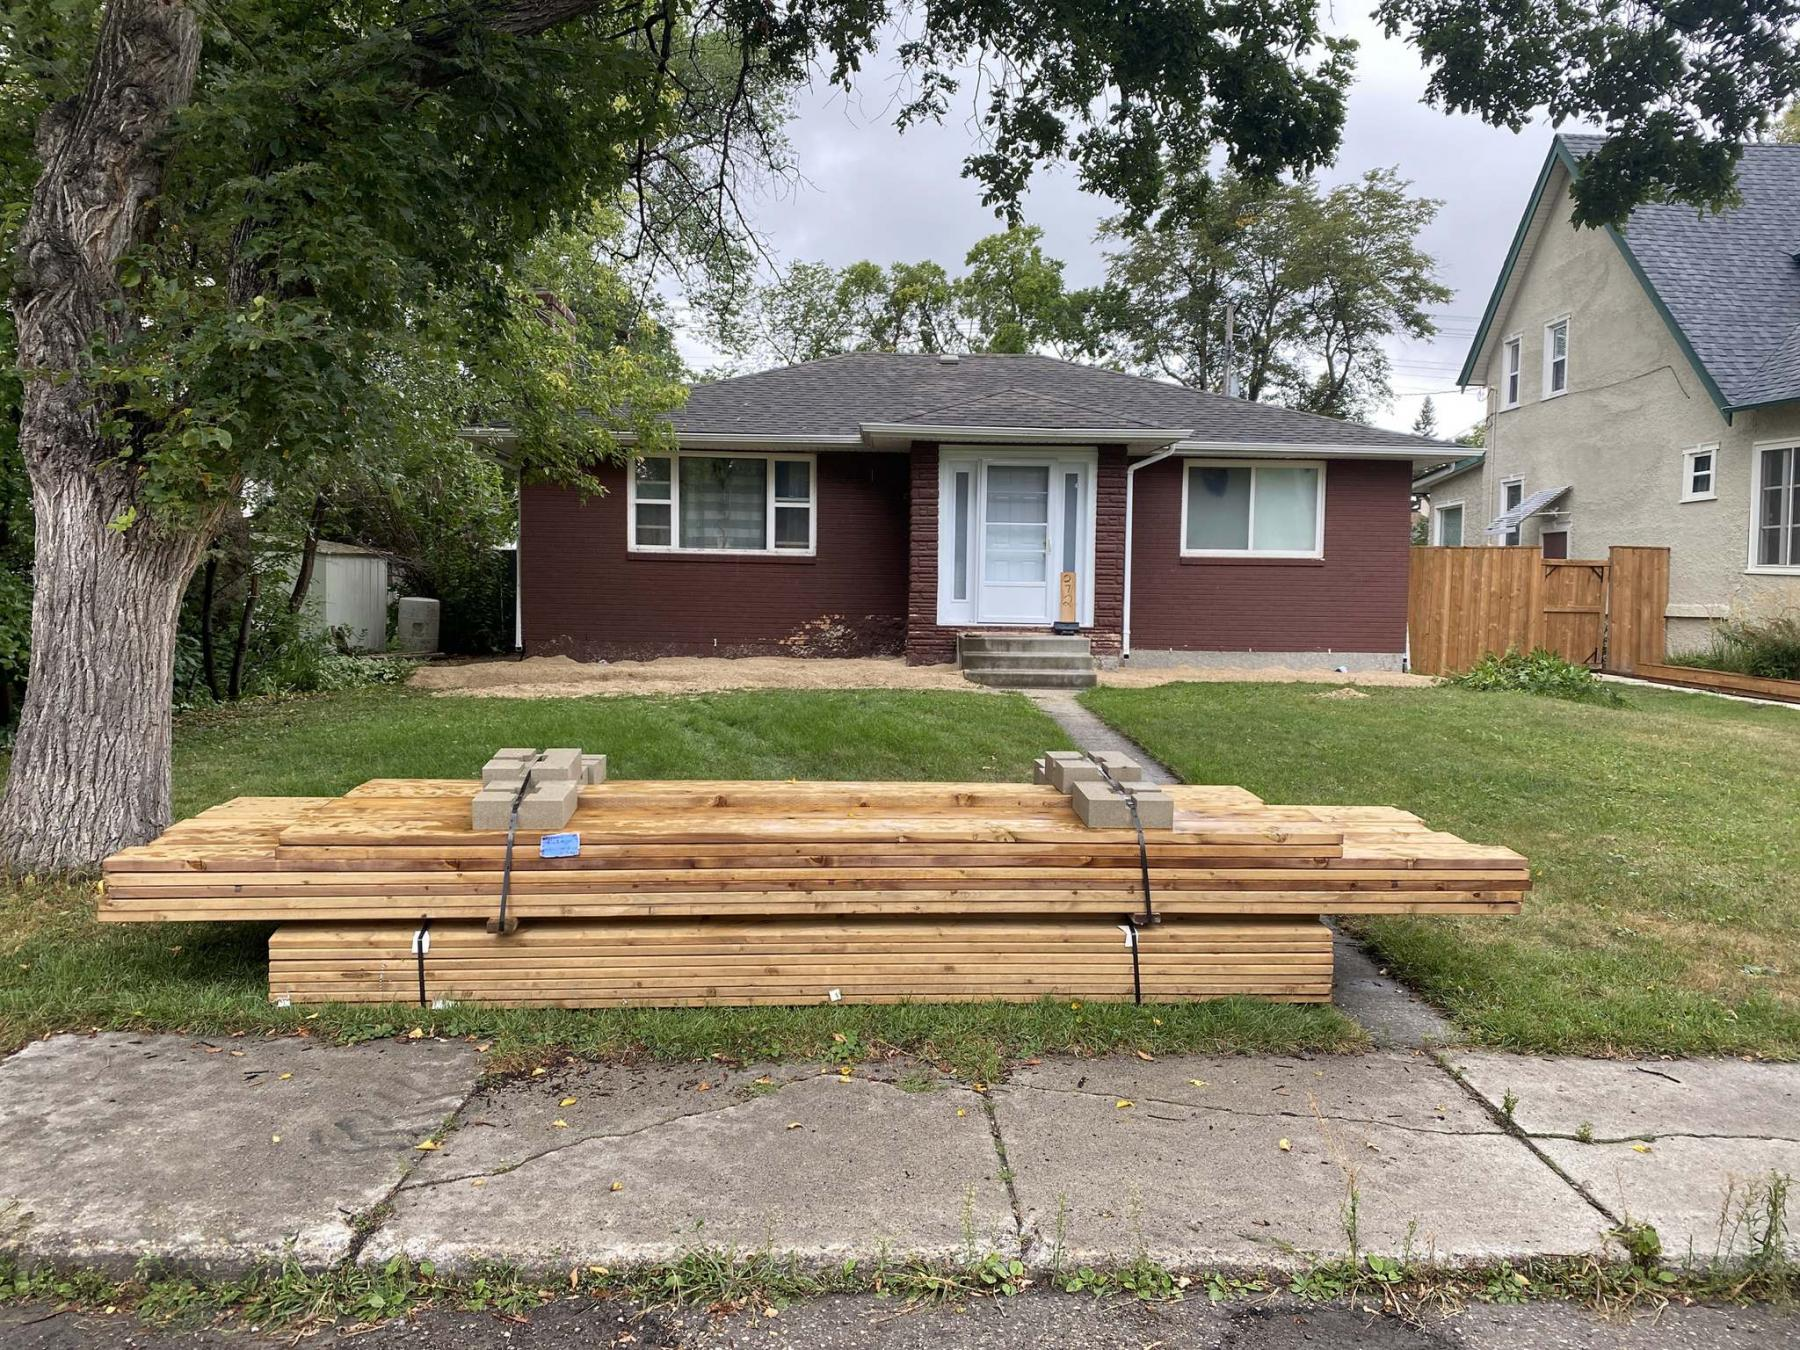 <p>Marc LaBossiere / Winnipeg Free Press</p><p>The lumber was delivered on Friday, the frame was built on Saturday and by 3 p.m. Sunday, the top decking and fascia were installed.</p>